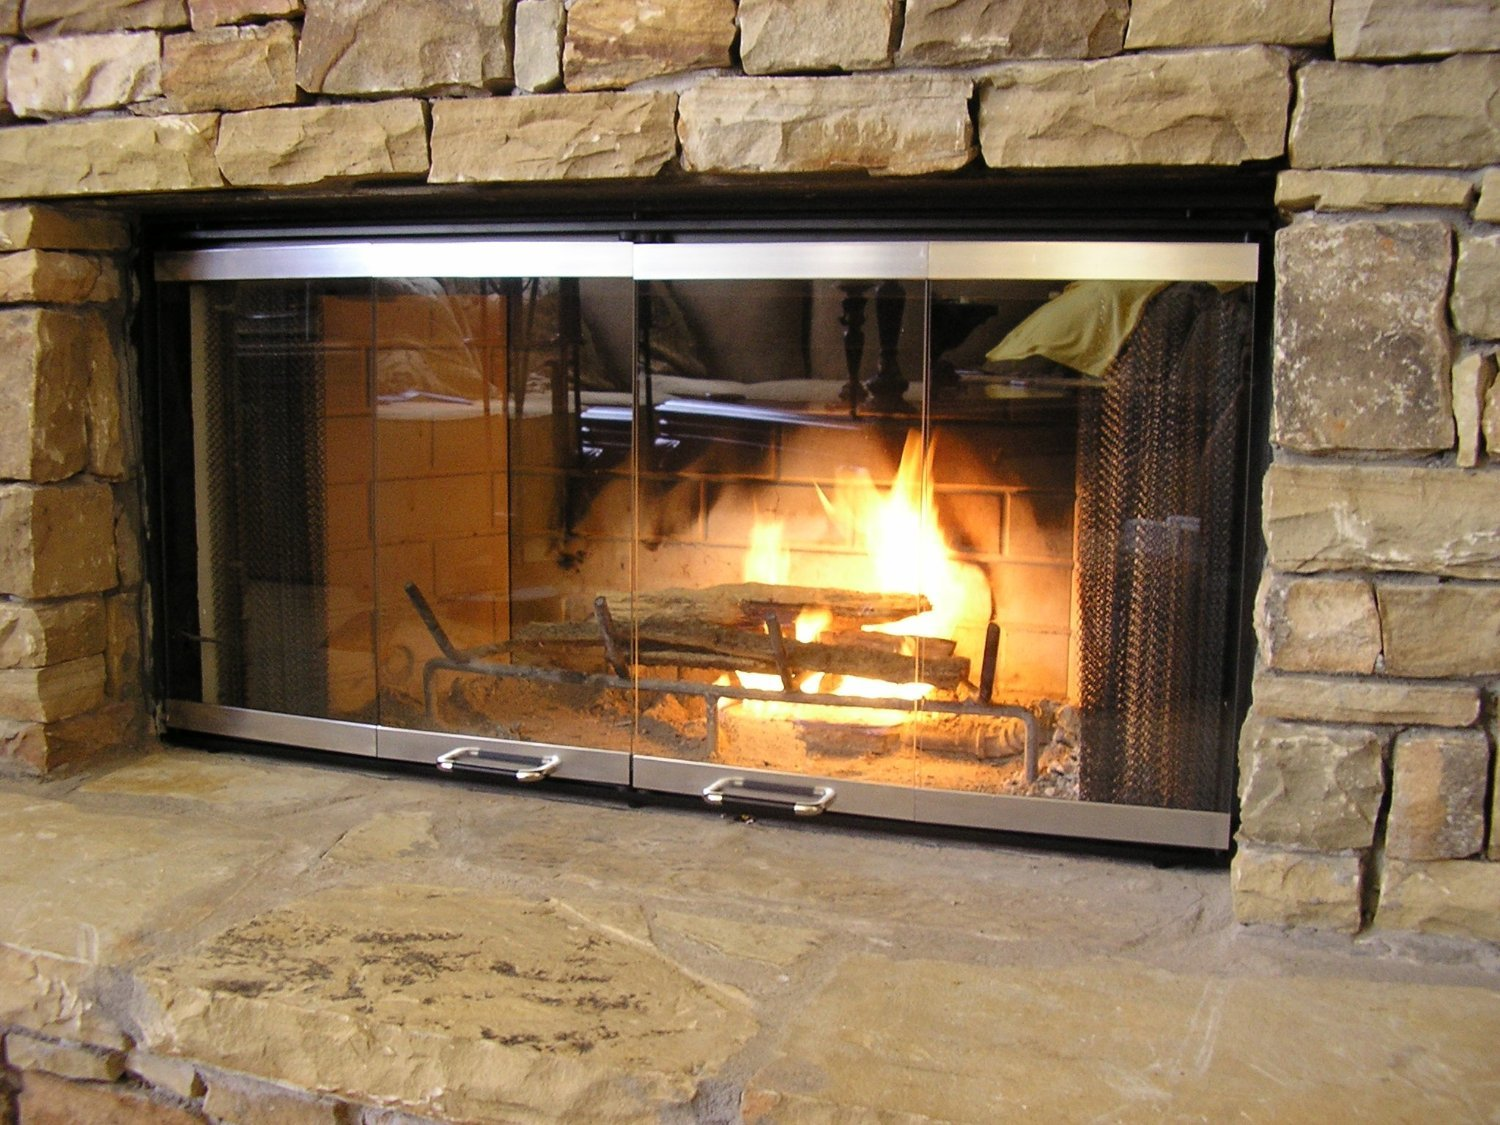 "Buy Heatilator Fireplace Doors - Stainless Steel 36"" Series Glass Doors - DM1036: Fireplace Screens - Amazon.com ? FREE DELIVERY possible on eligible purchases"